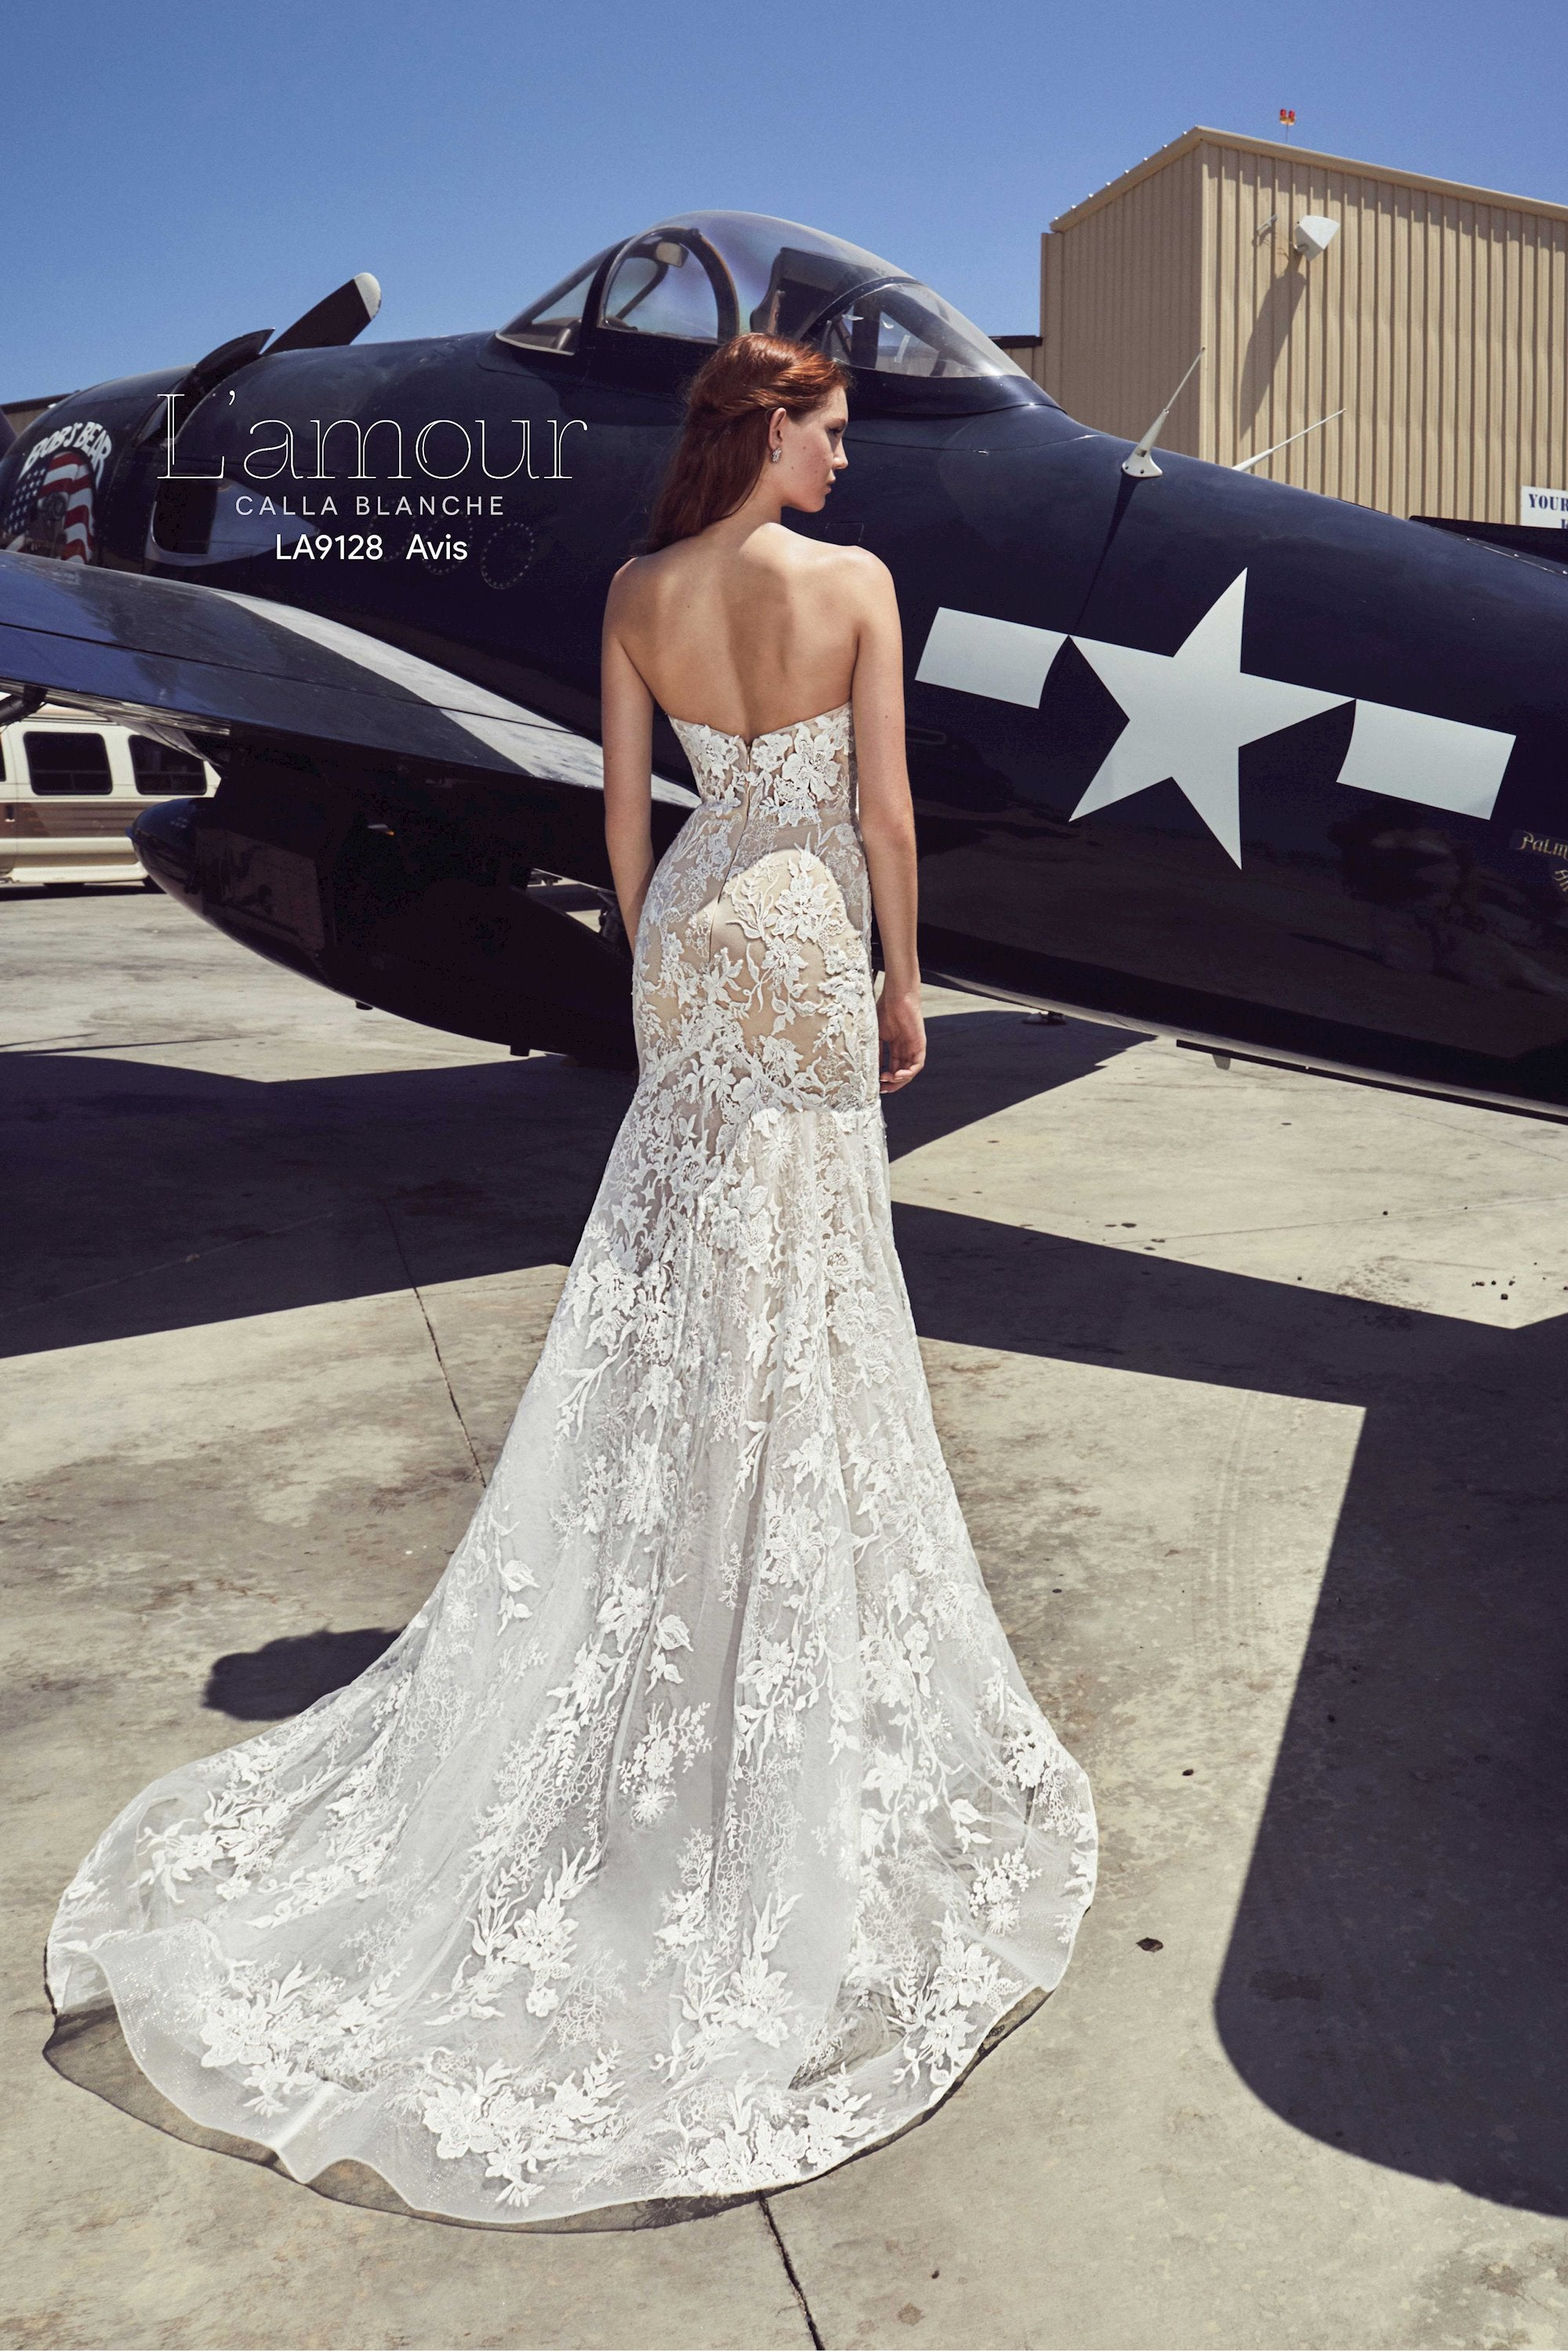 L'amour by Calla Blanche - LA9128 Avis Sample Gown